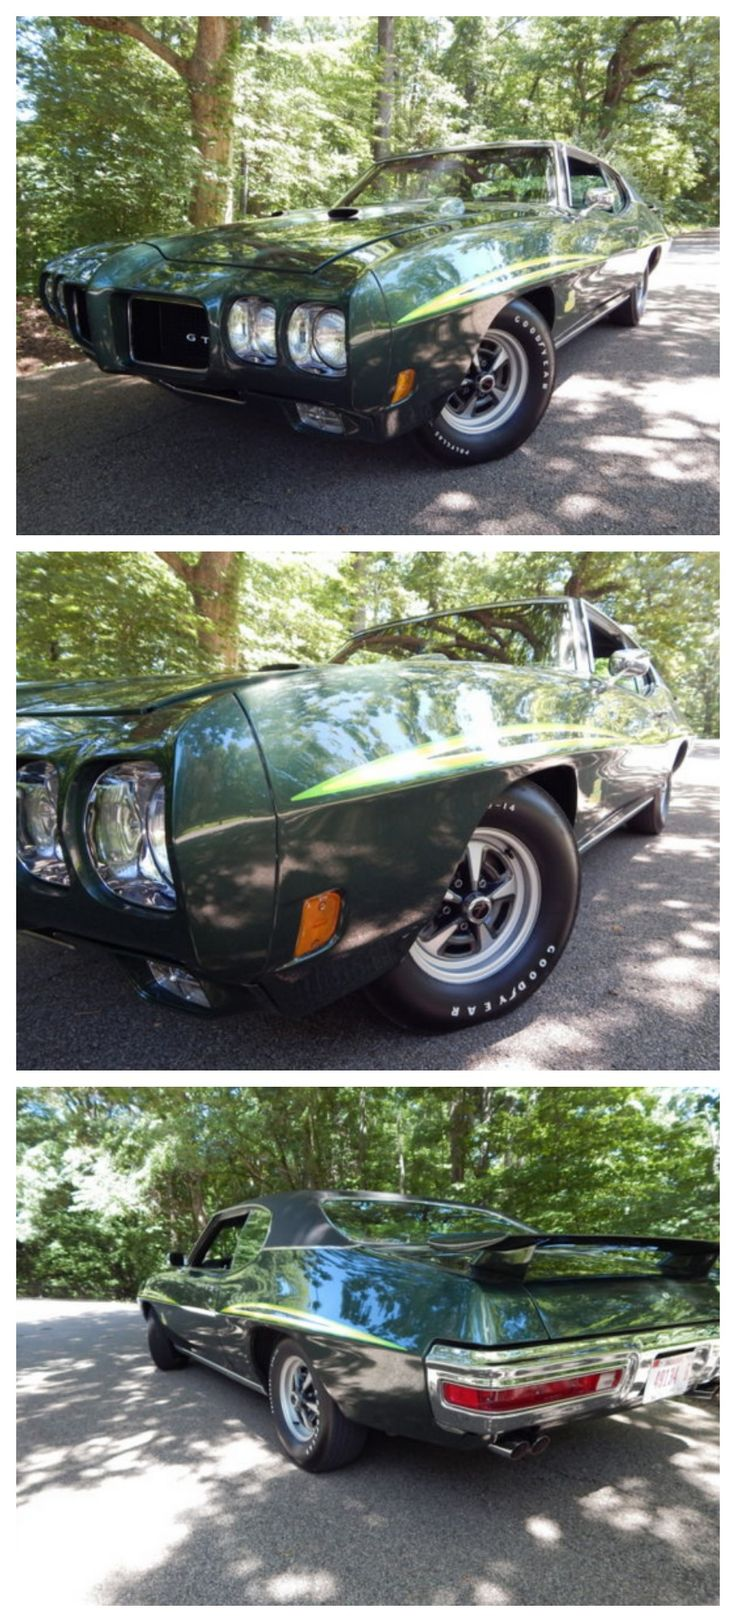 72 Best Images About Stuff I Like On Pinterest: 105 Best Pontiac GTO 71 72 73 Images On Pinterest